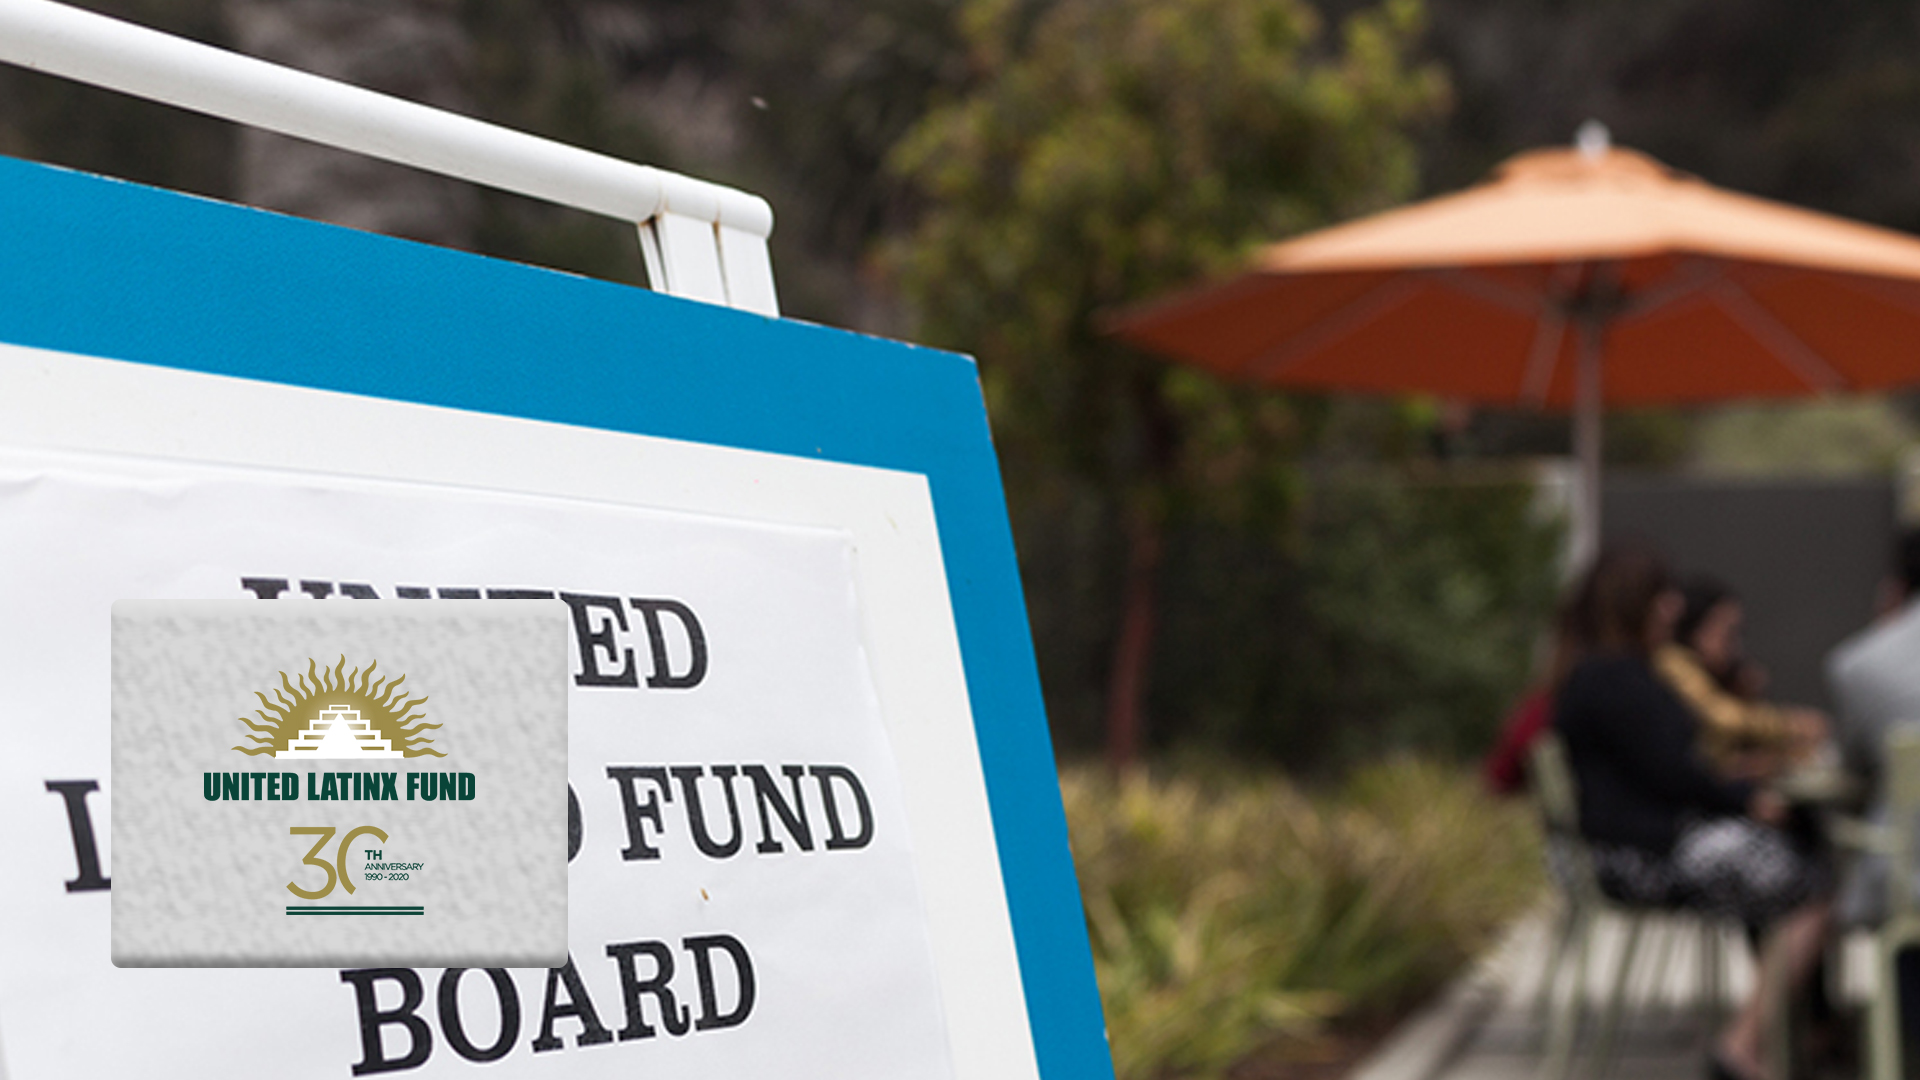 United Latino Fund: 2019 Financial Statements and Independent Auditors' Report